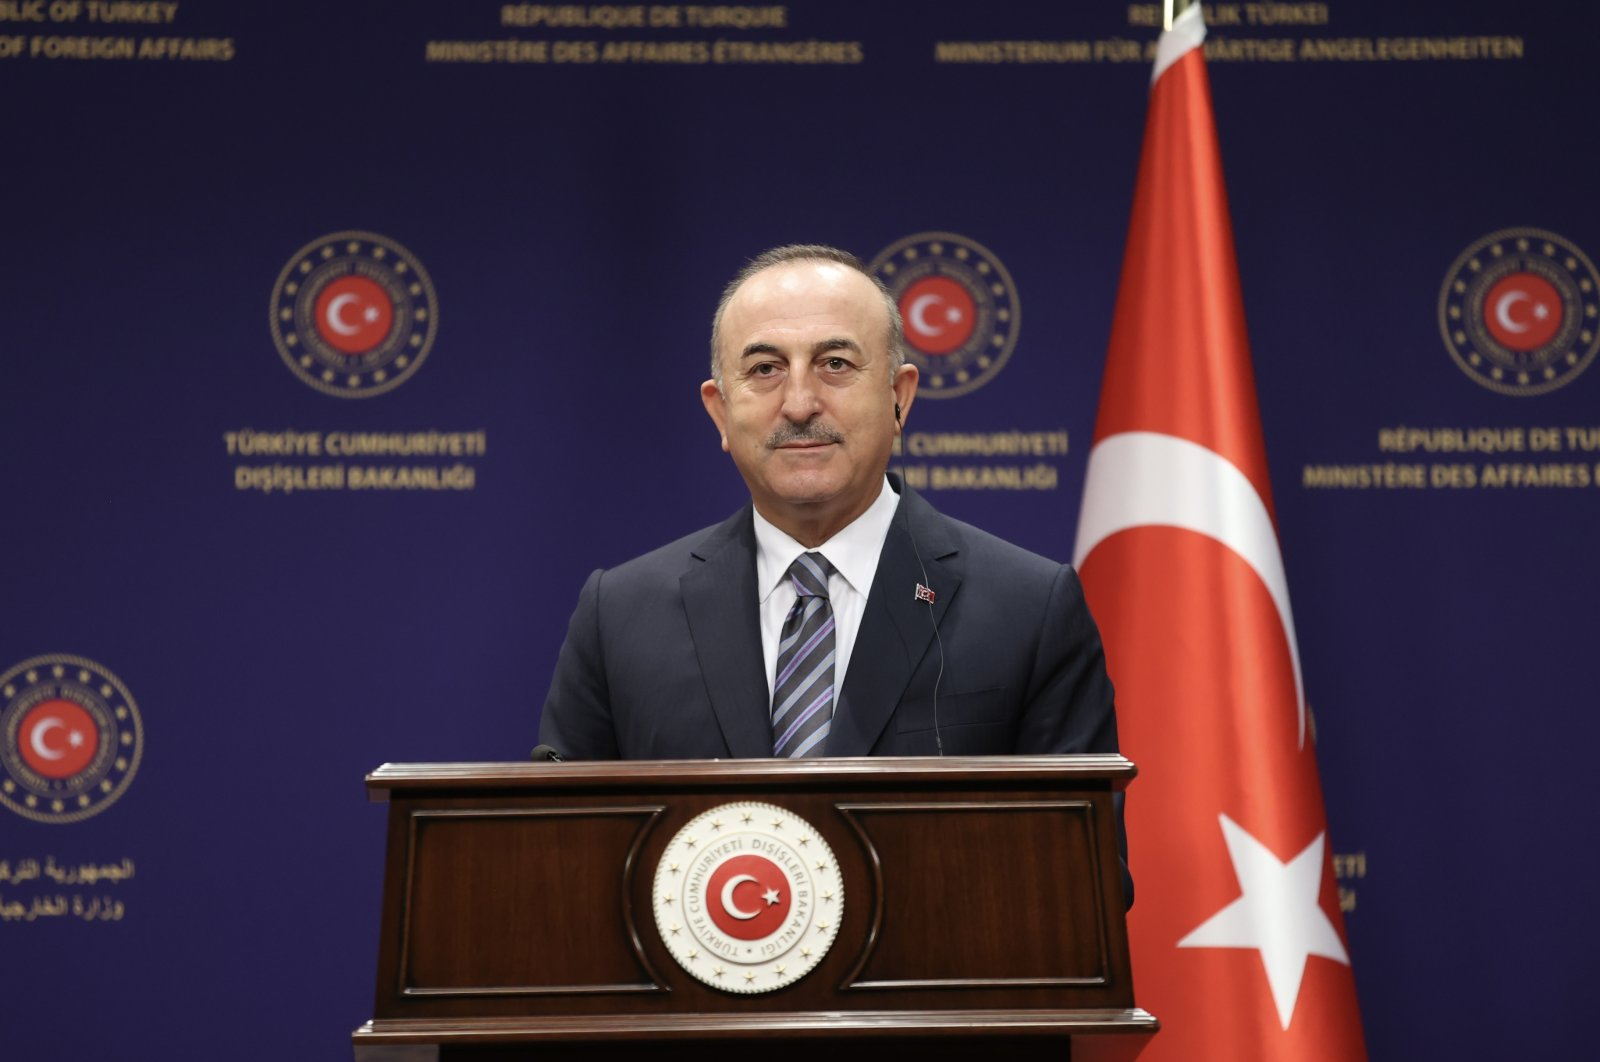 Foreign Minister Mevlüt Çavuşoğlu speaks during a joint press conference with hisNicaraguan counterpart Denis Moncada Colindres in the capital Ankara, Turkey, Oct. 13, 2021. (AA Photo)